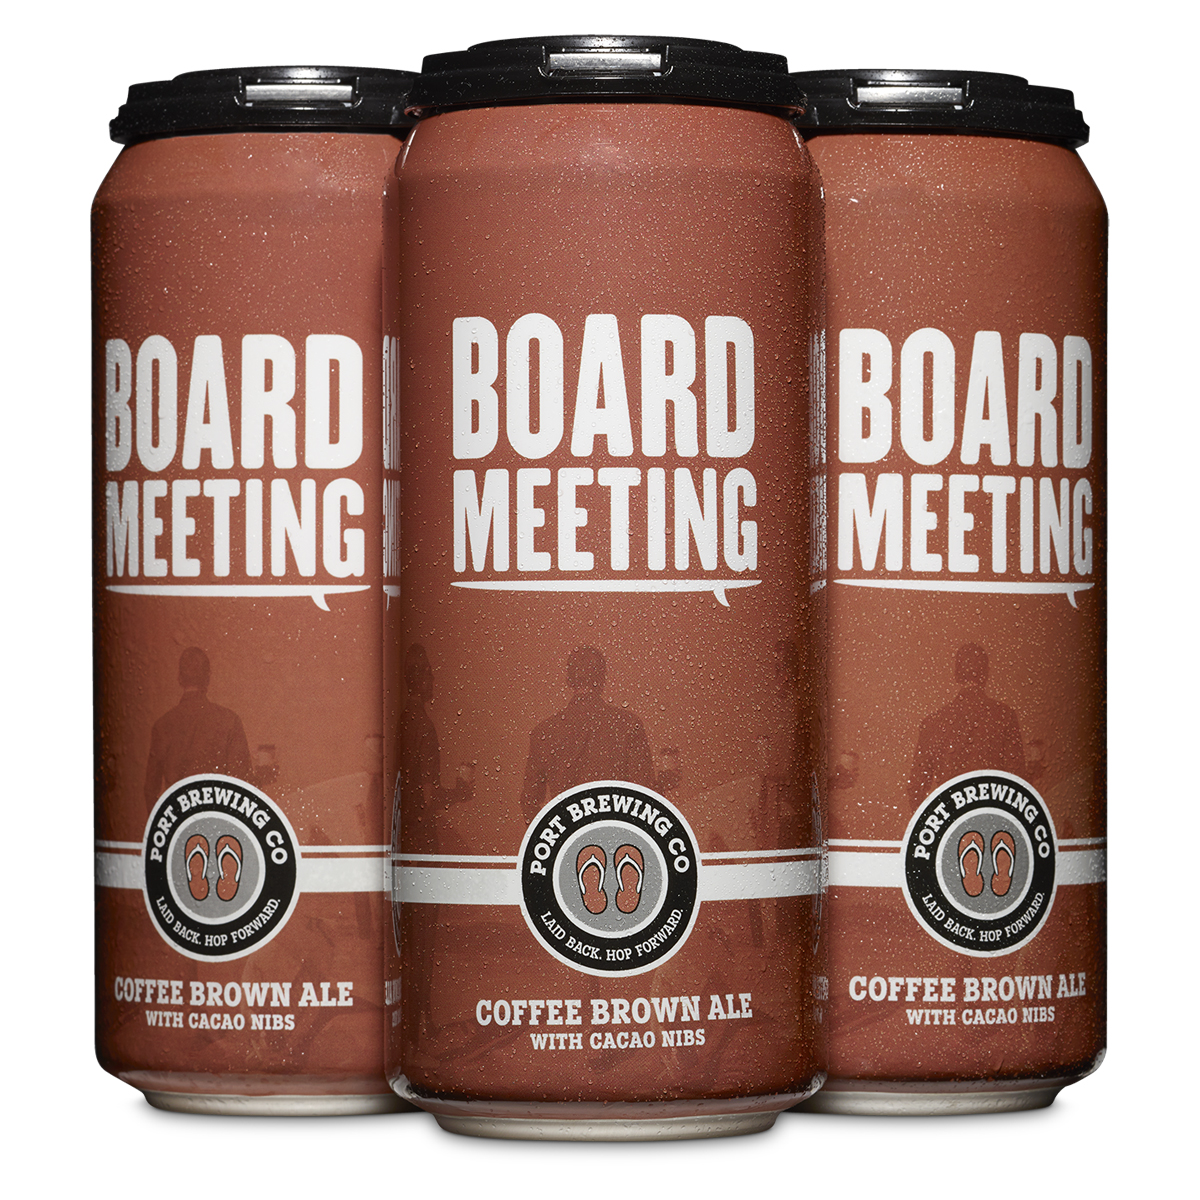 Board Meeting Brown Ale - Four- Pack THUMBNAIL